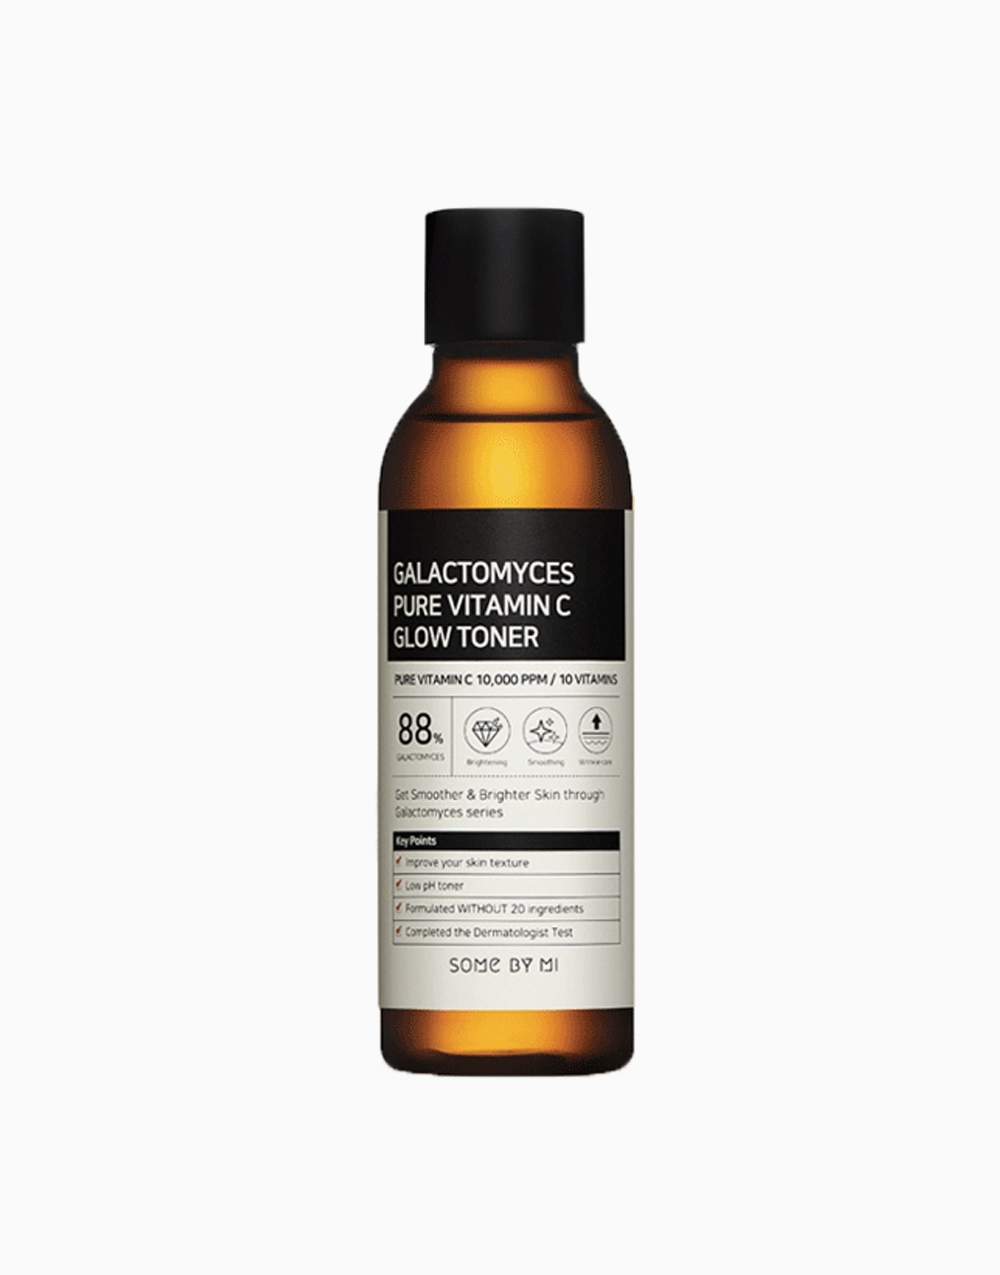 Galactomyces Pure Vitamin C Glow Toner by Some By Mi